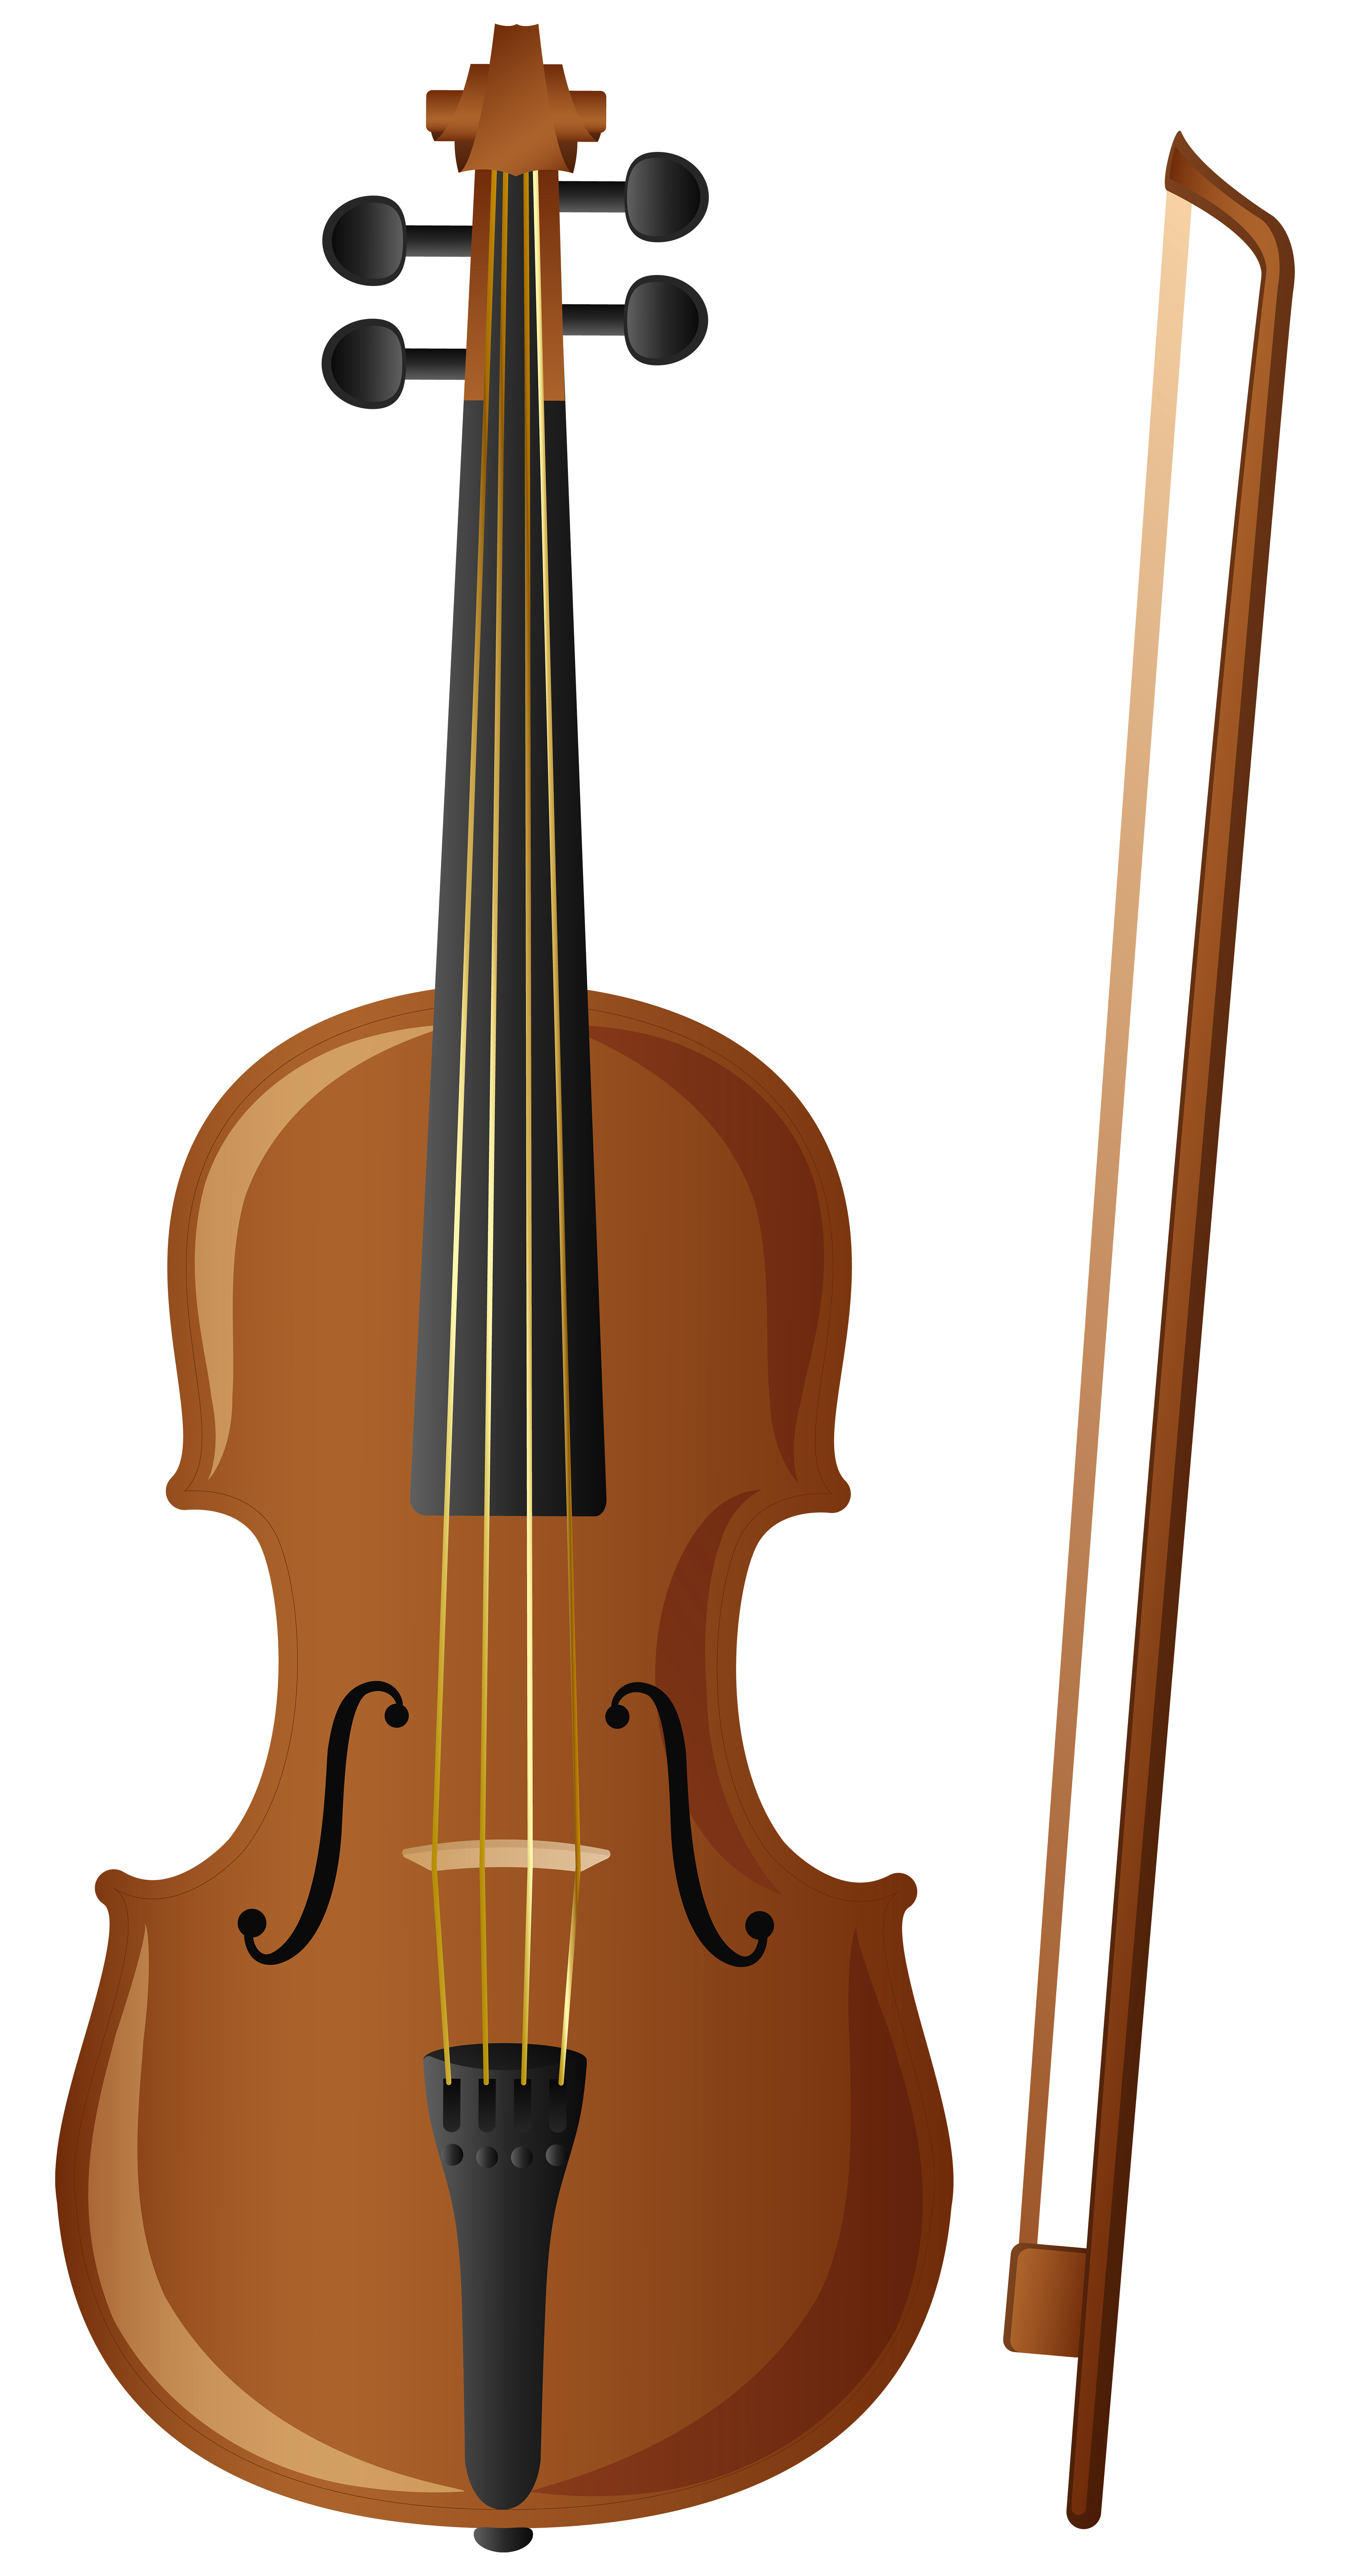 Violin clip art png. Image gallery yopriceville high